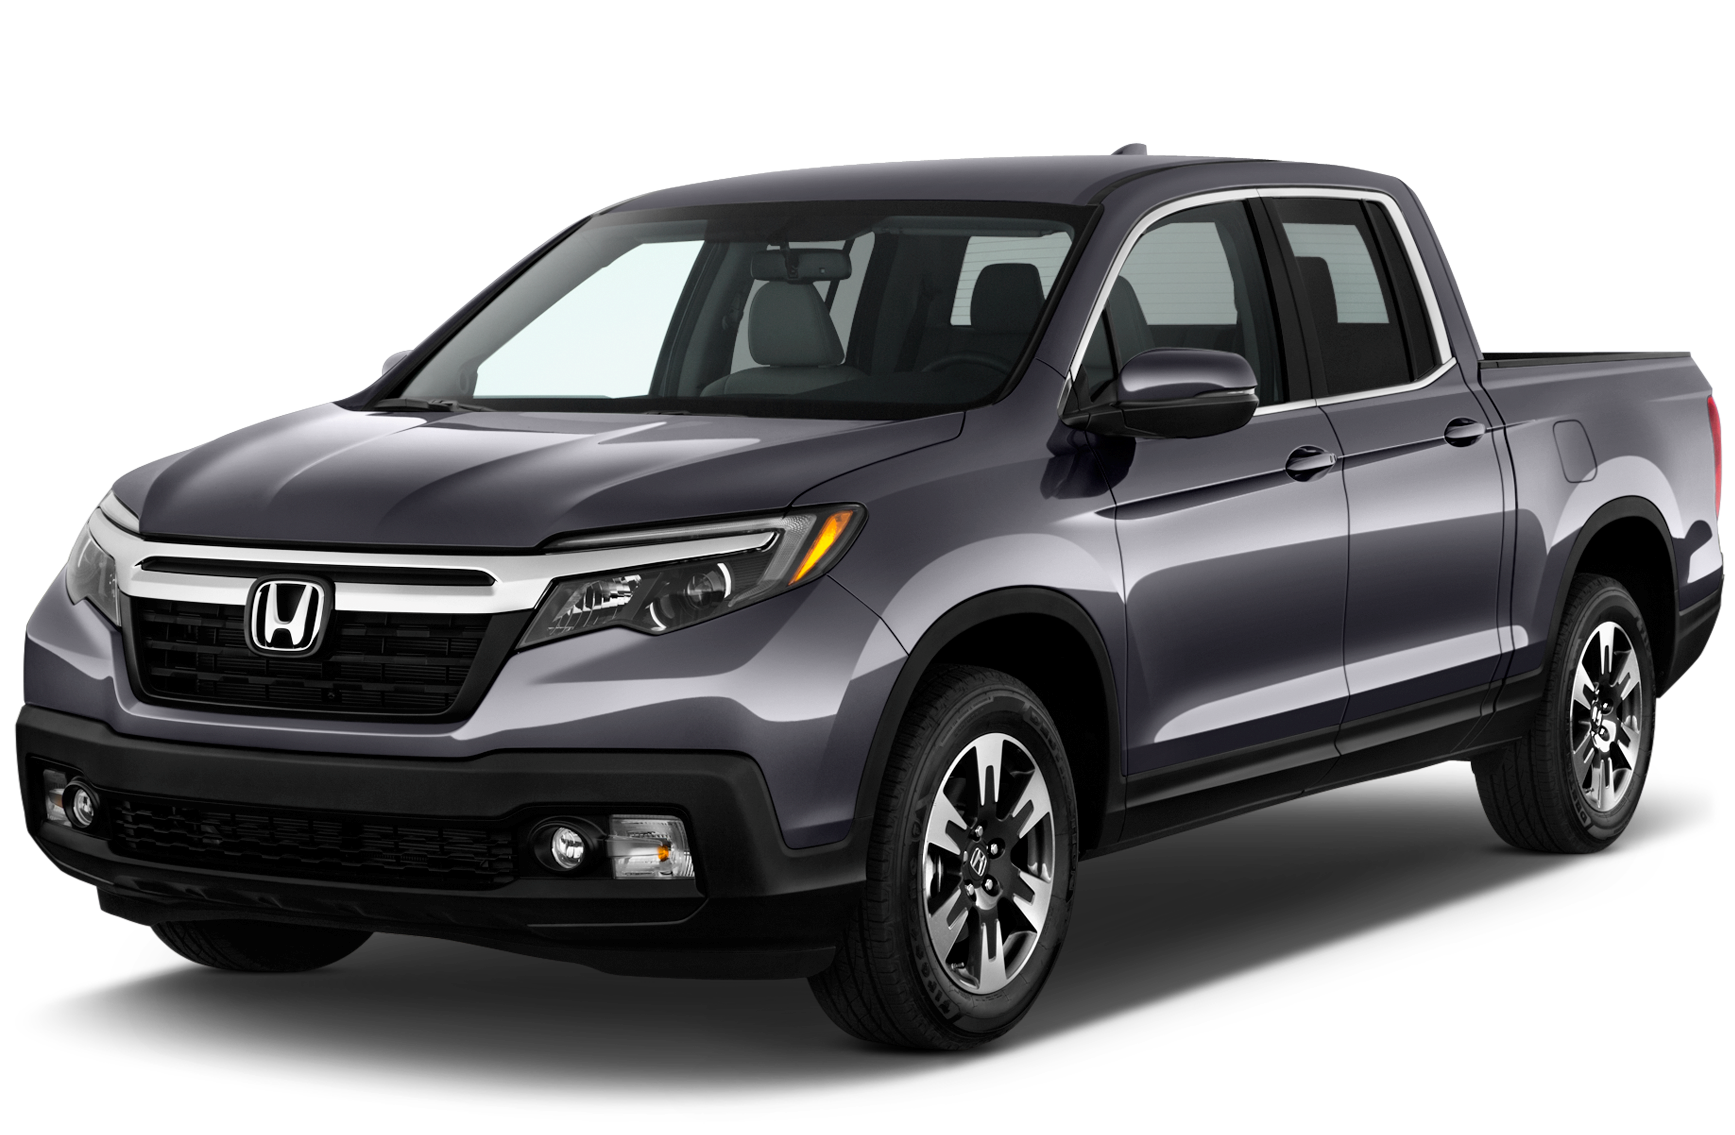 Honda Ridgeline Near South Bend, IN